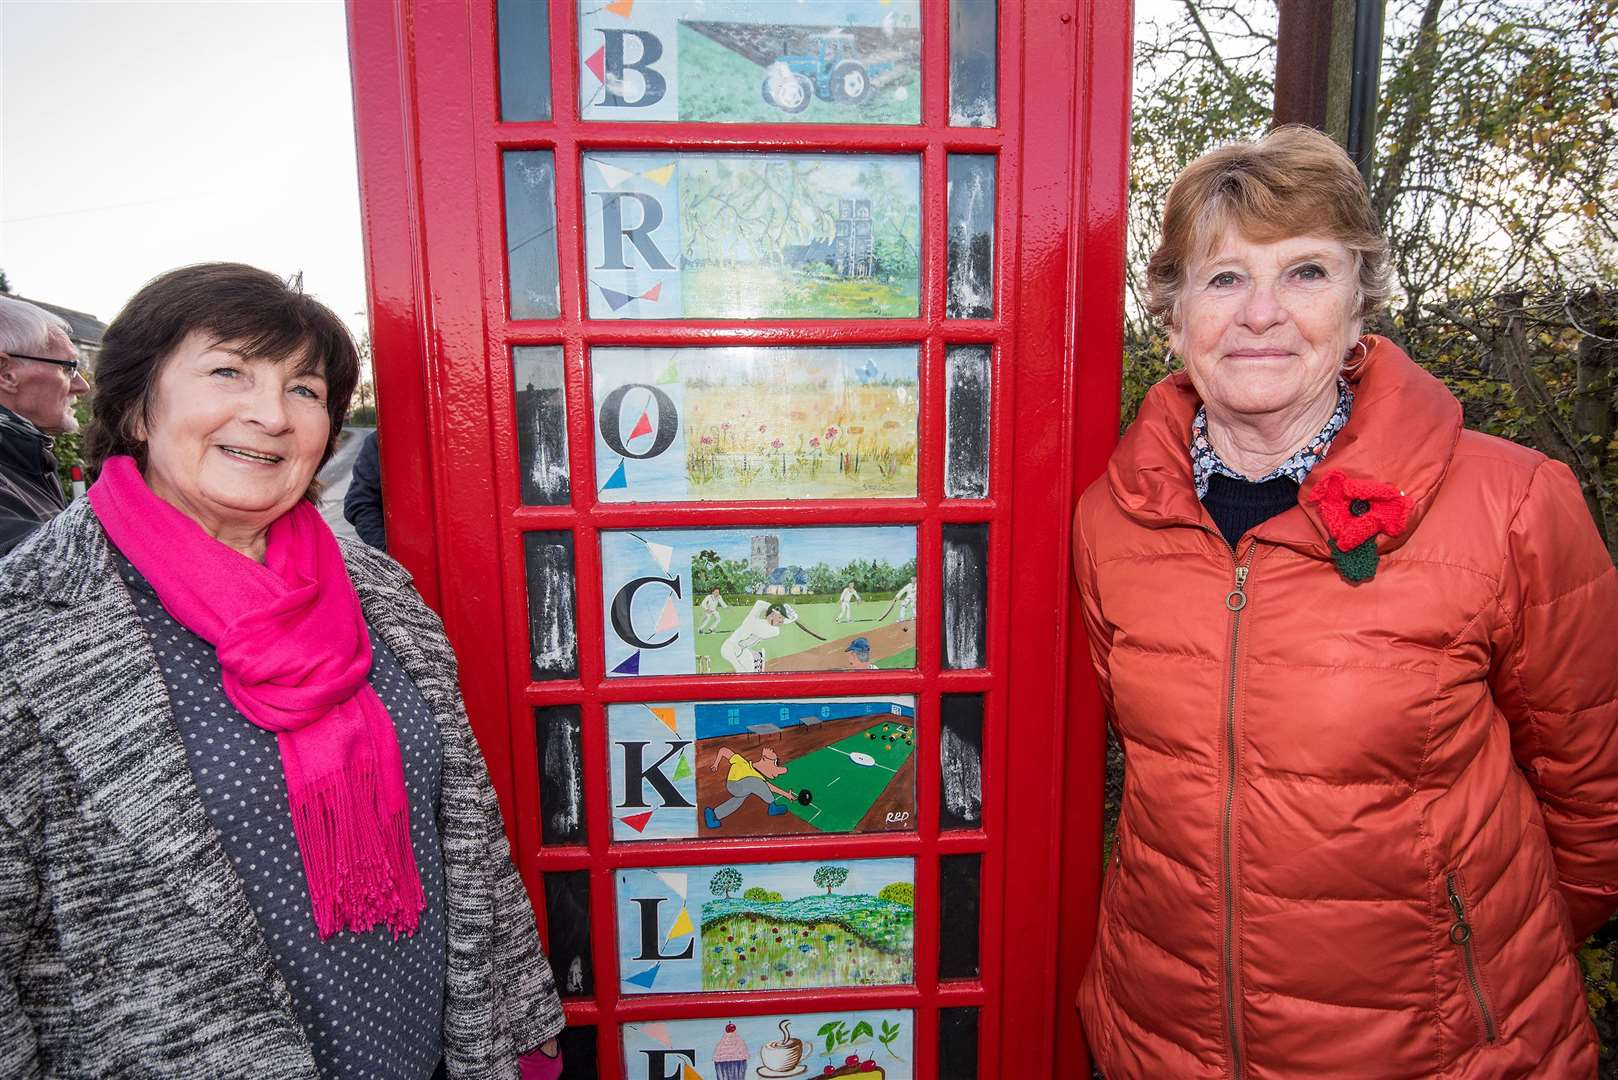 Brockley has its own Tate Modern, in the shape of its telephone box art gallery. Picture by Mark Westley